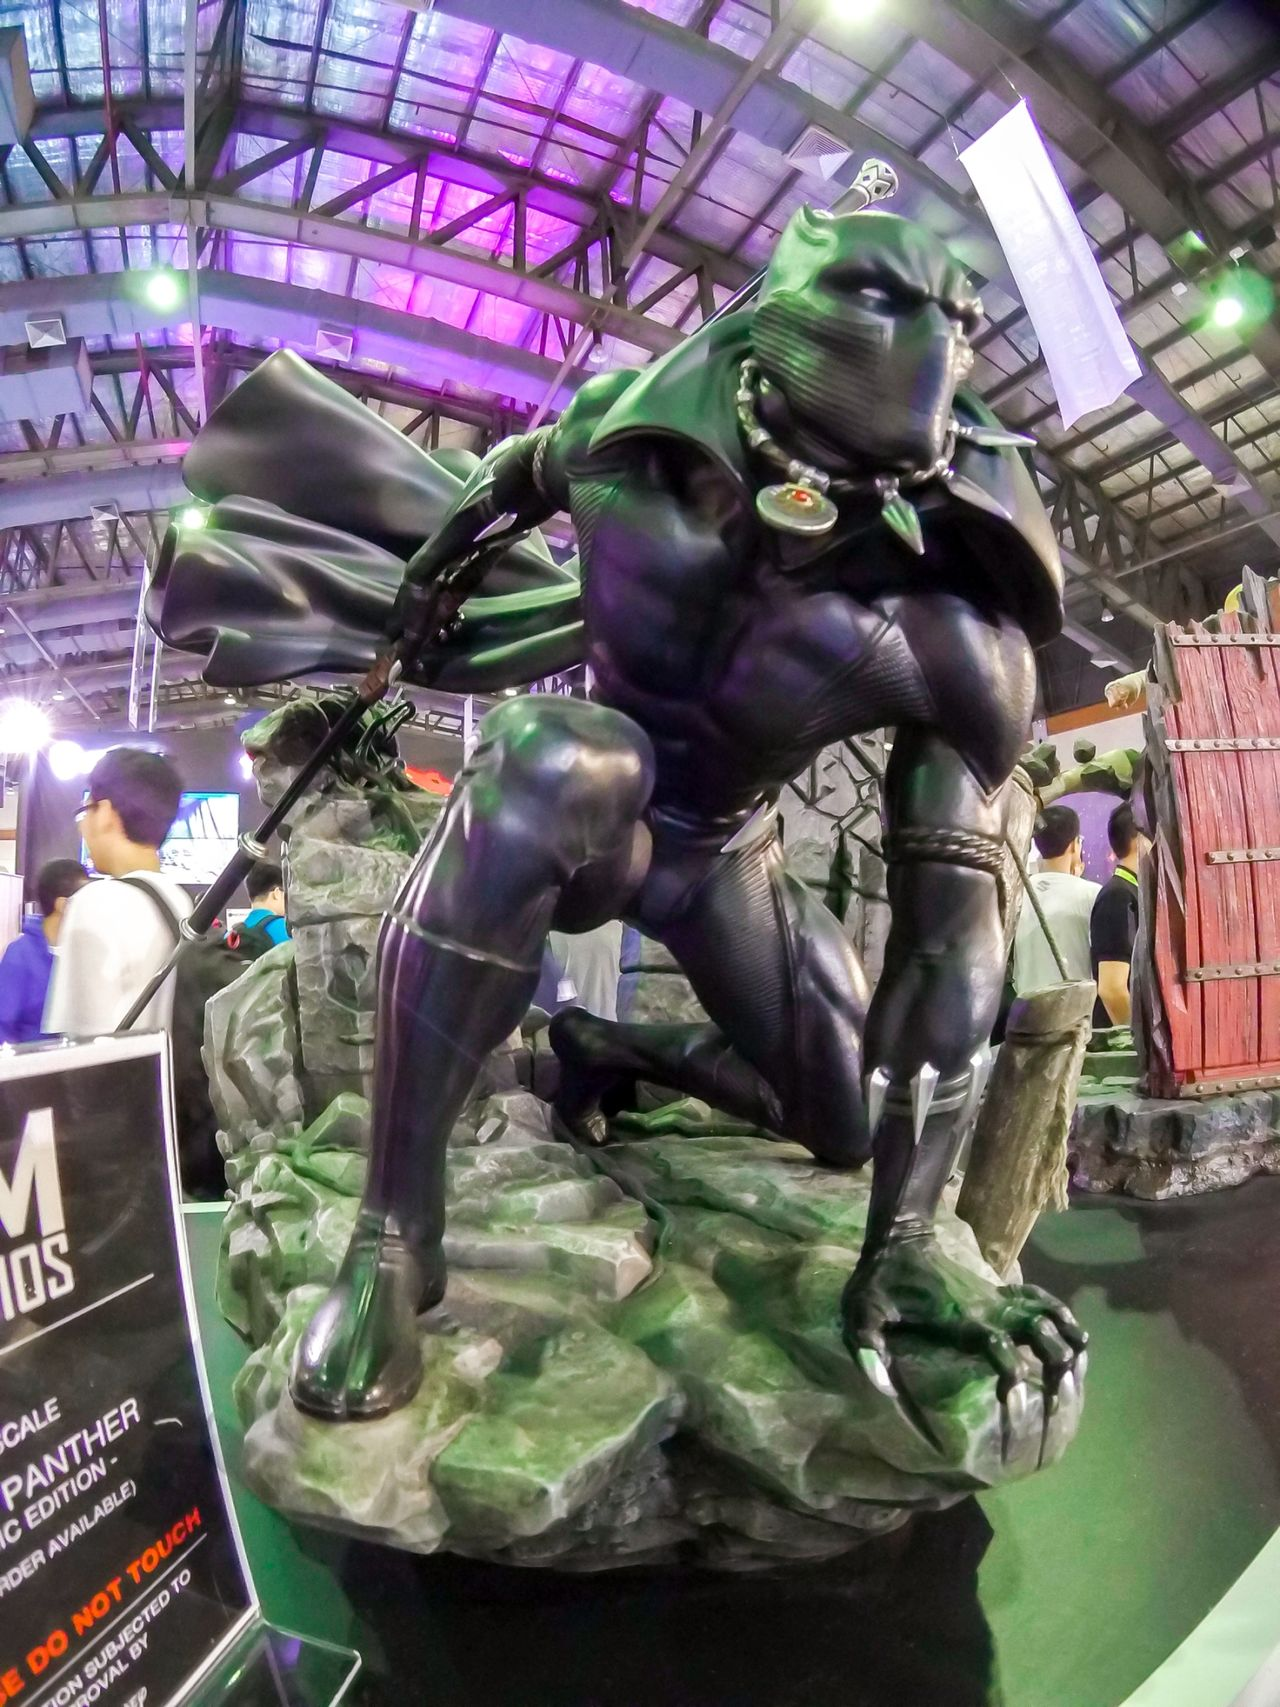 Let them come... Statue Art And Craft Sculpture Marvel Marvel Comics Marvel Universe Marvelcomics Marveluniverse Actionfigurephotography Actionfigure Comiccon Explore Jakarta Indonesia Comic Con Comic Con Superhero Superheroes EyeEm Gallery EyeEm Jakarta The Week On Eyem Xiaomi Yi Action Camera EyeEm Indonesia EyeEm Best Shots Explorejakarta Details